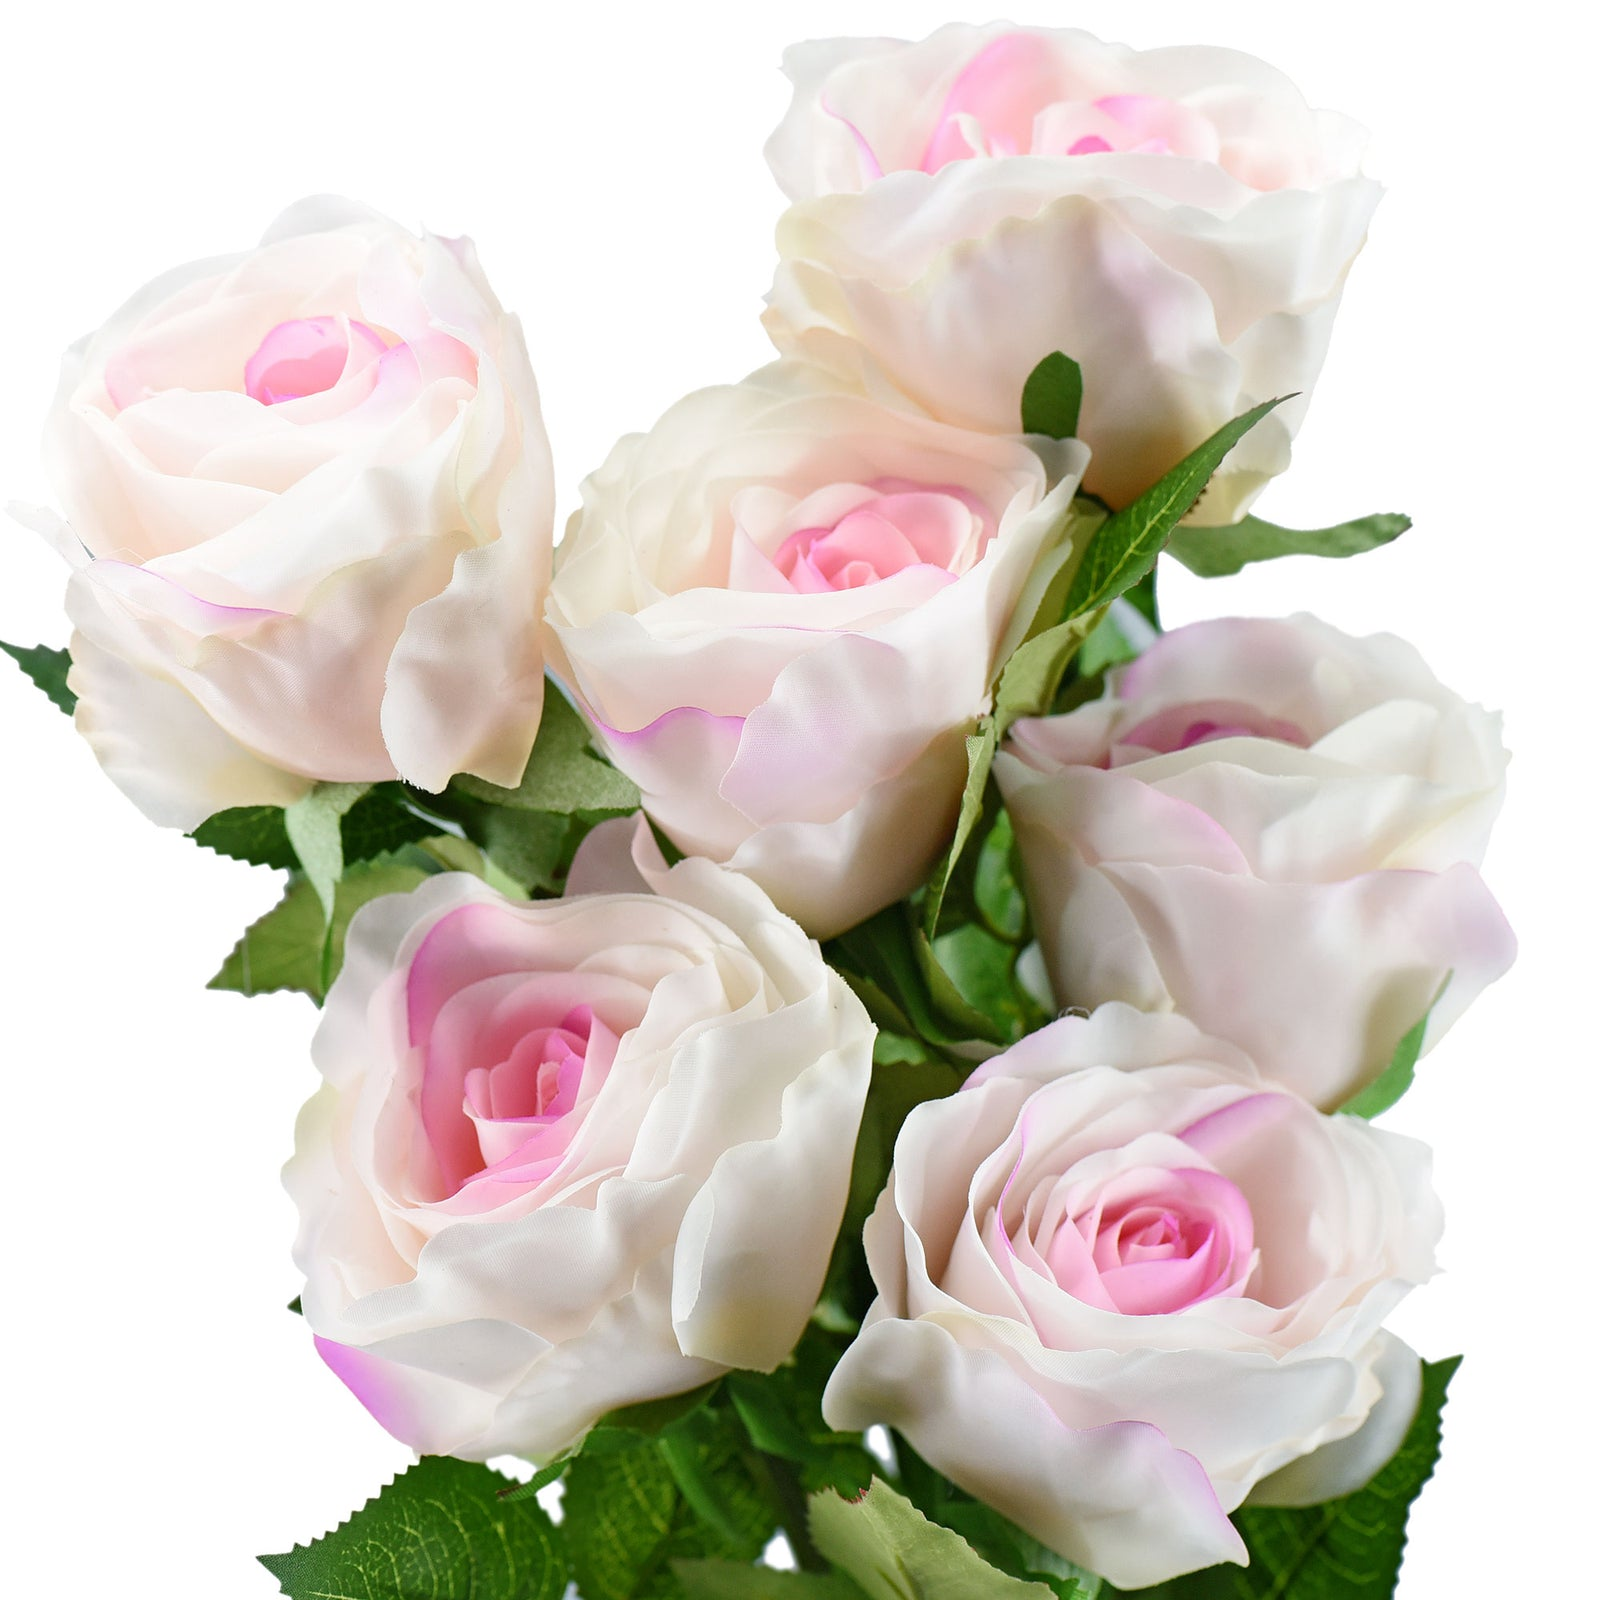 FiveSeasonStuff Premium Quality Large Bloom Pink Ecuadorian Roses Real Touch Silk Artificial Flowers 'Petals Feel and Look like Fresh Roses' 6 Stems